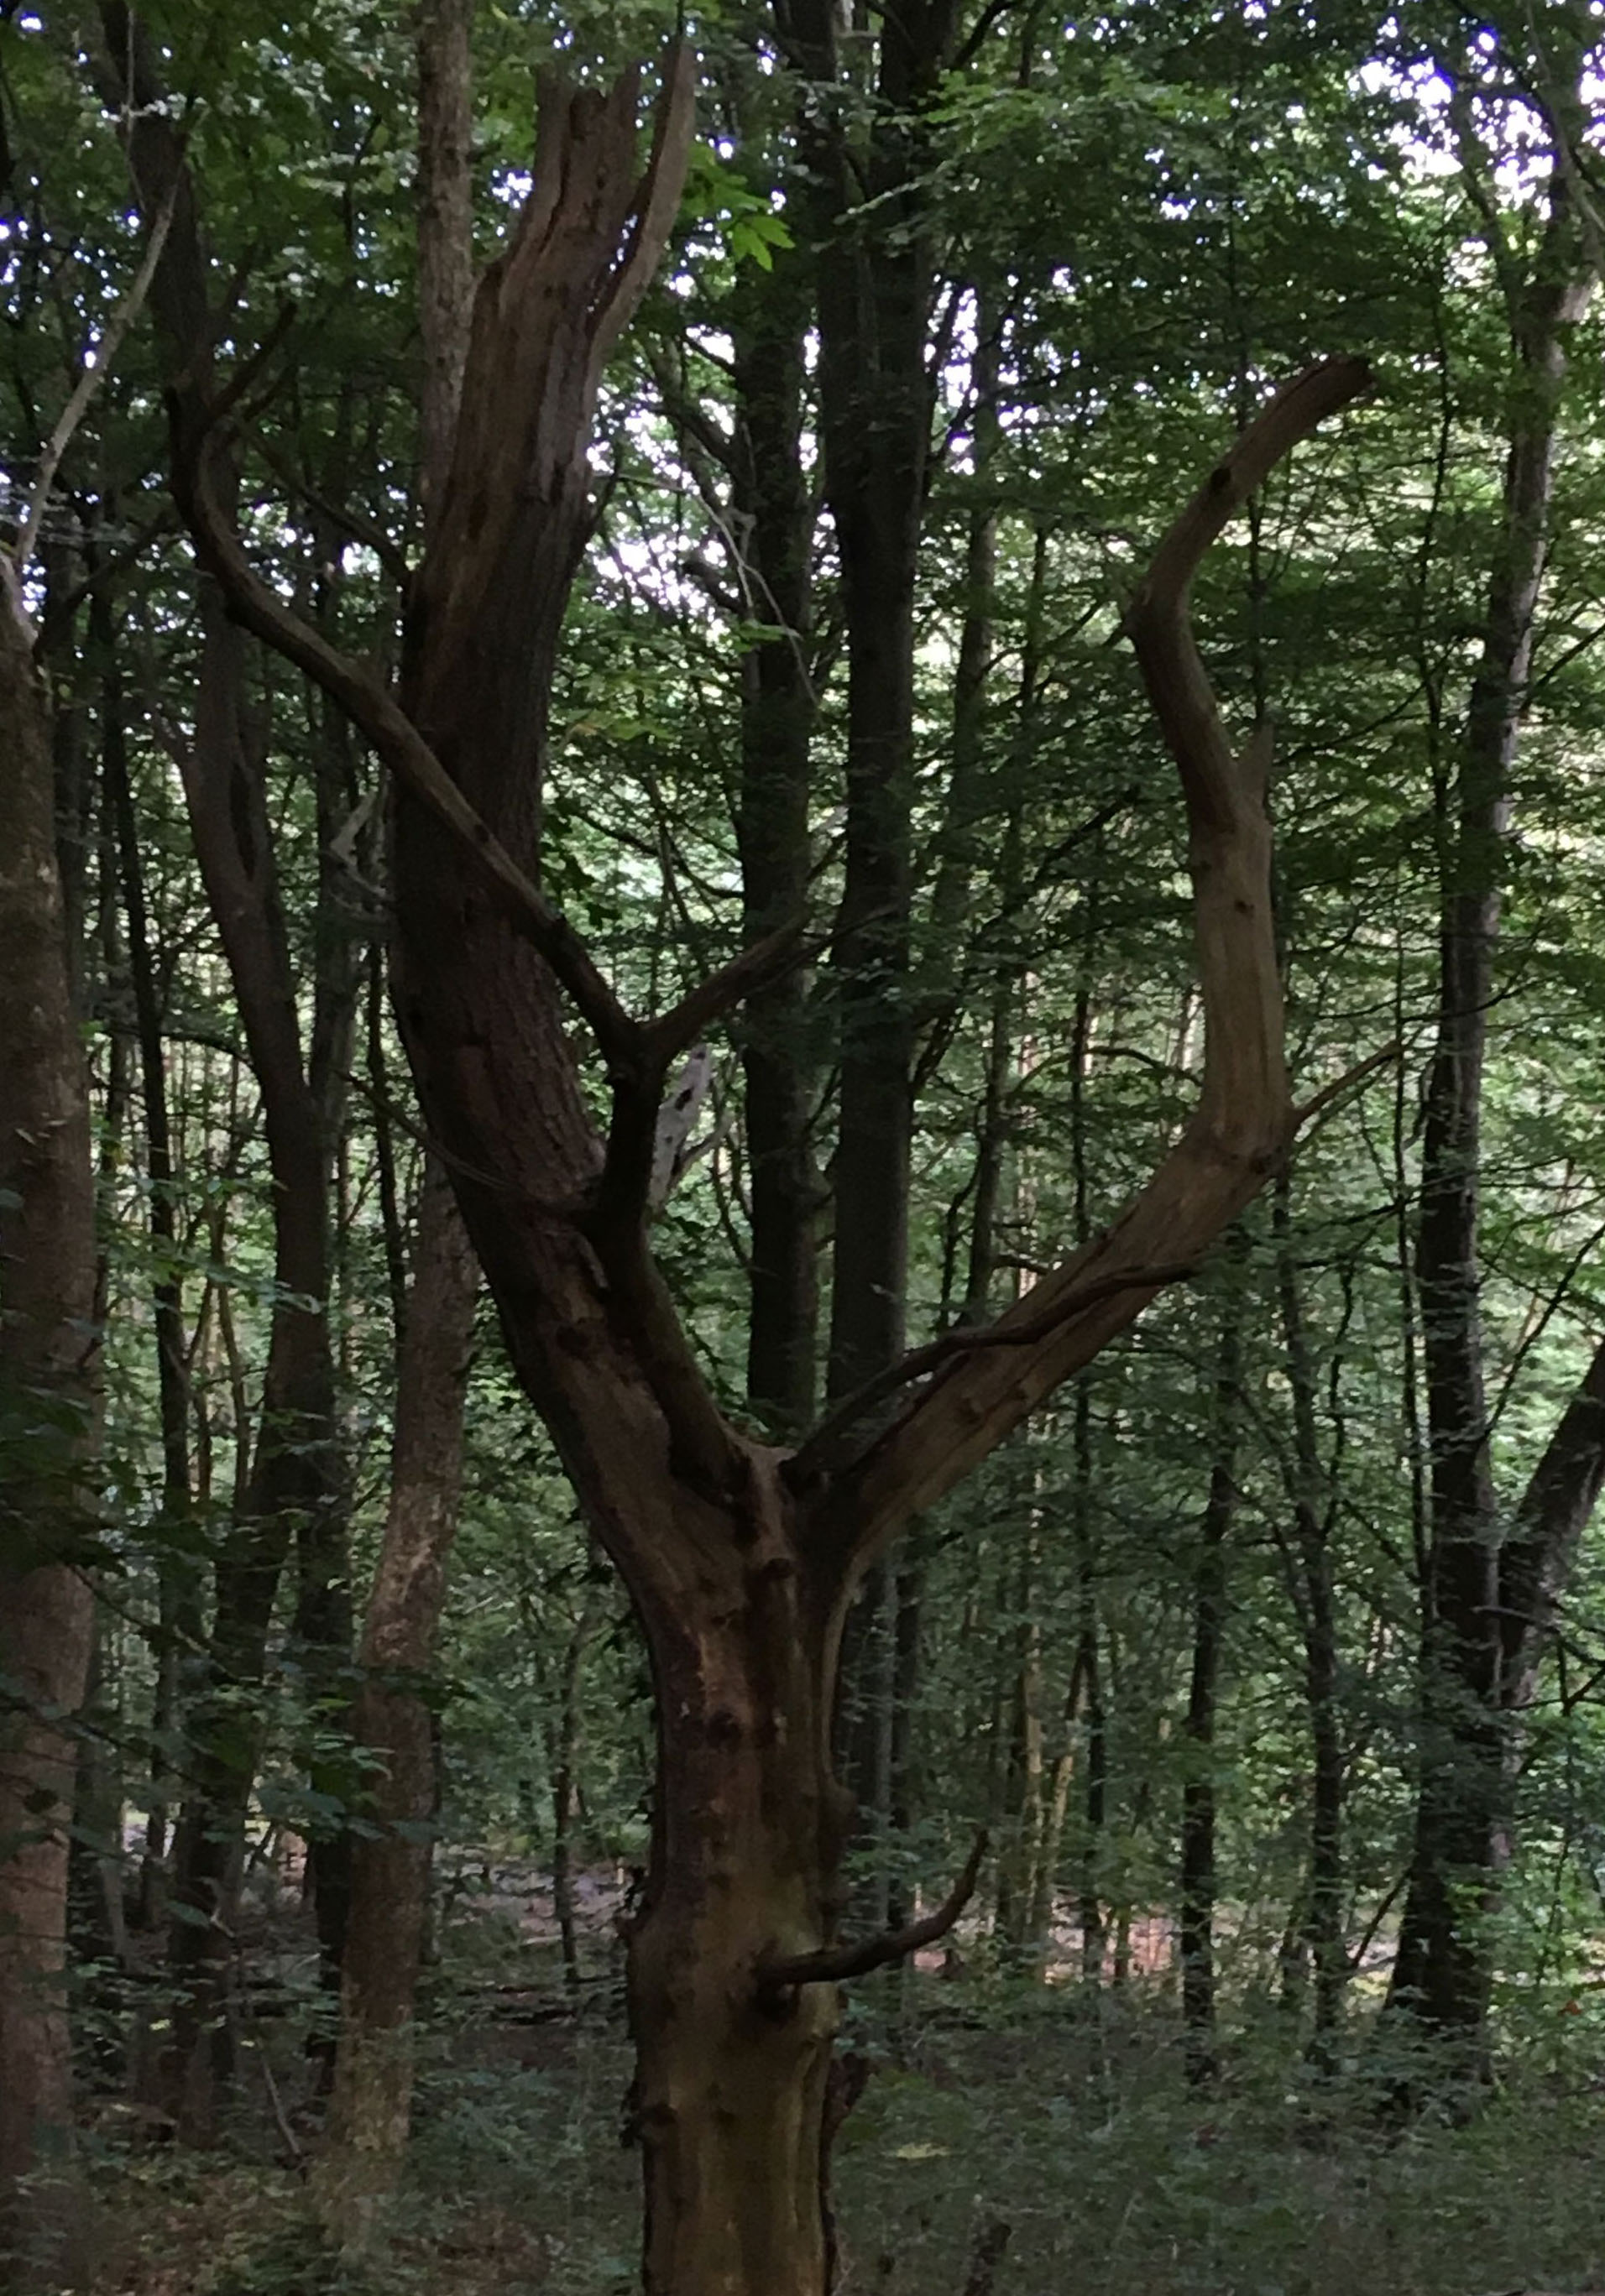 Elen of the Ways as she appeared in this tree in St Fagans National Museum.